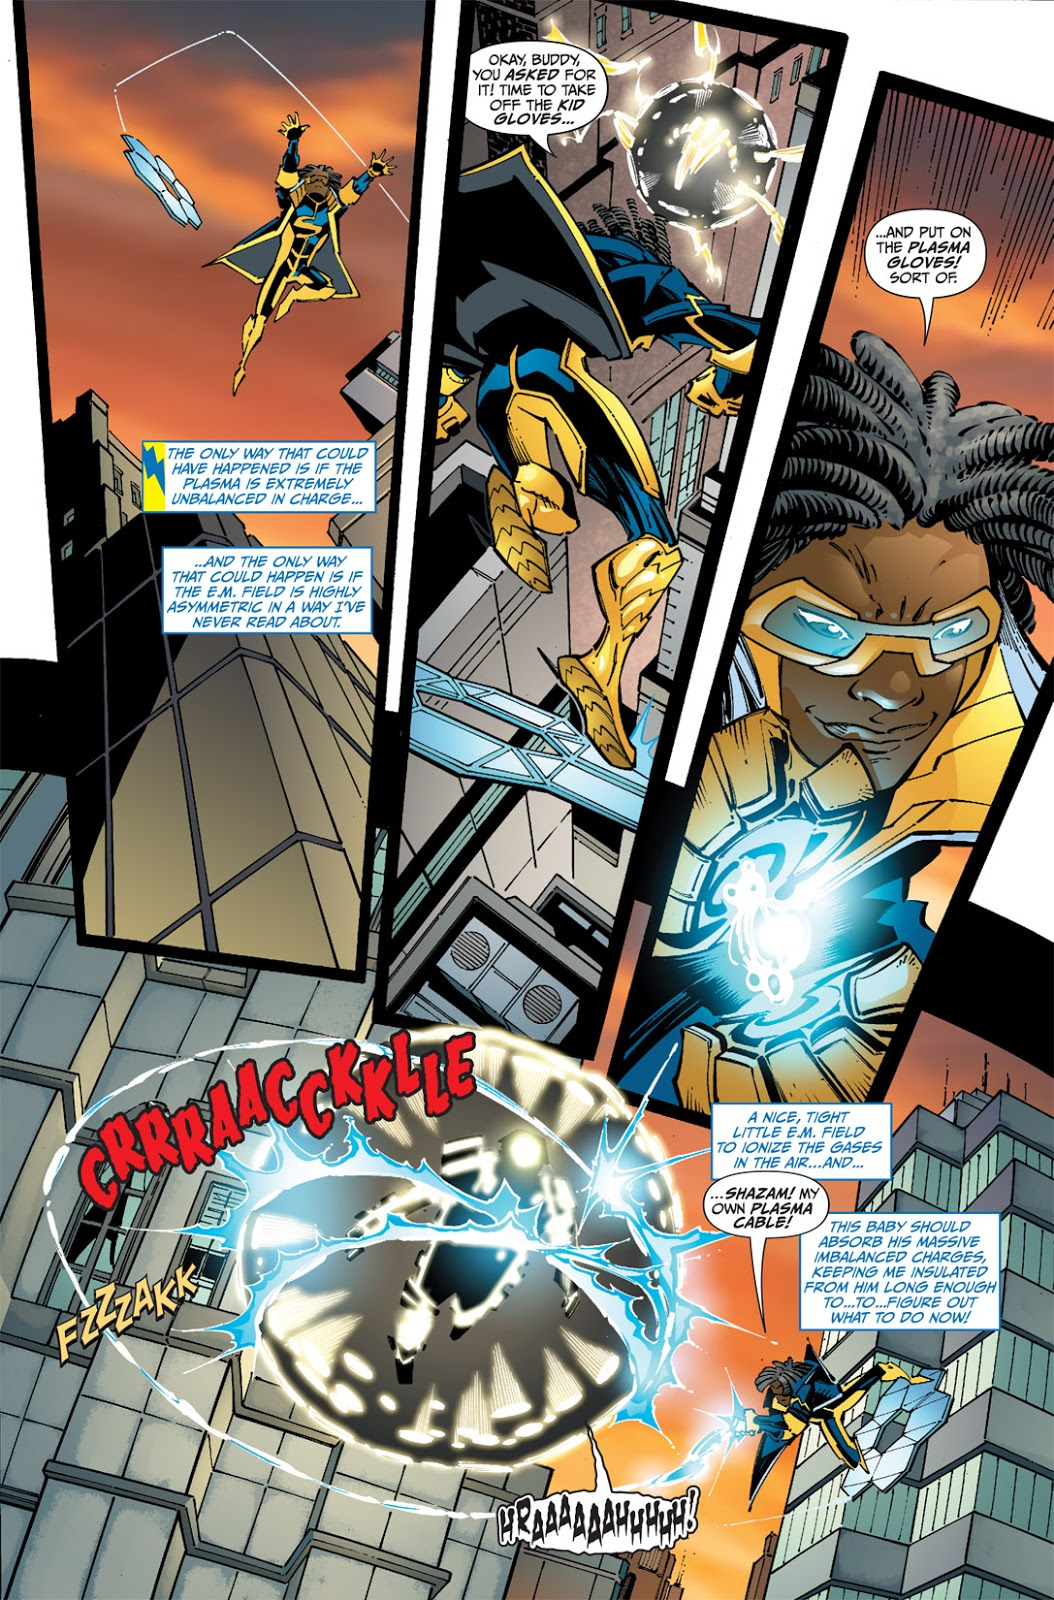 In 'Static Shock' (2011) #1, Static Shock contains Sunspot in an E.M. field to ionize the plasma suit in air.